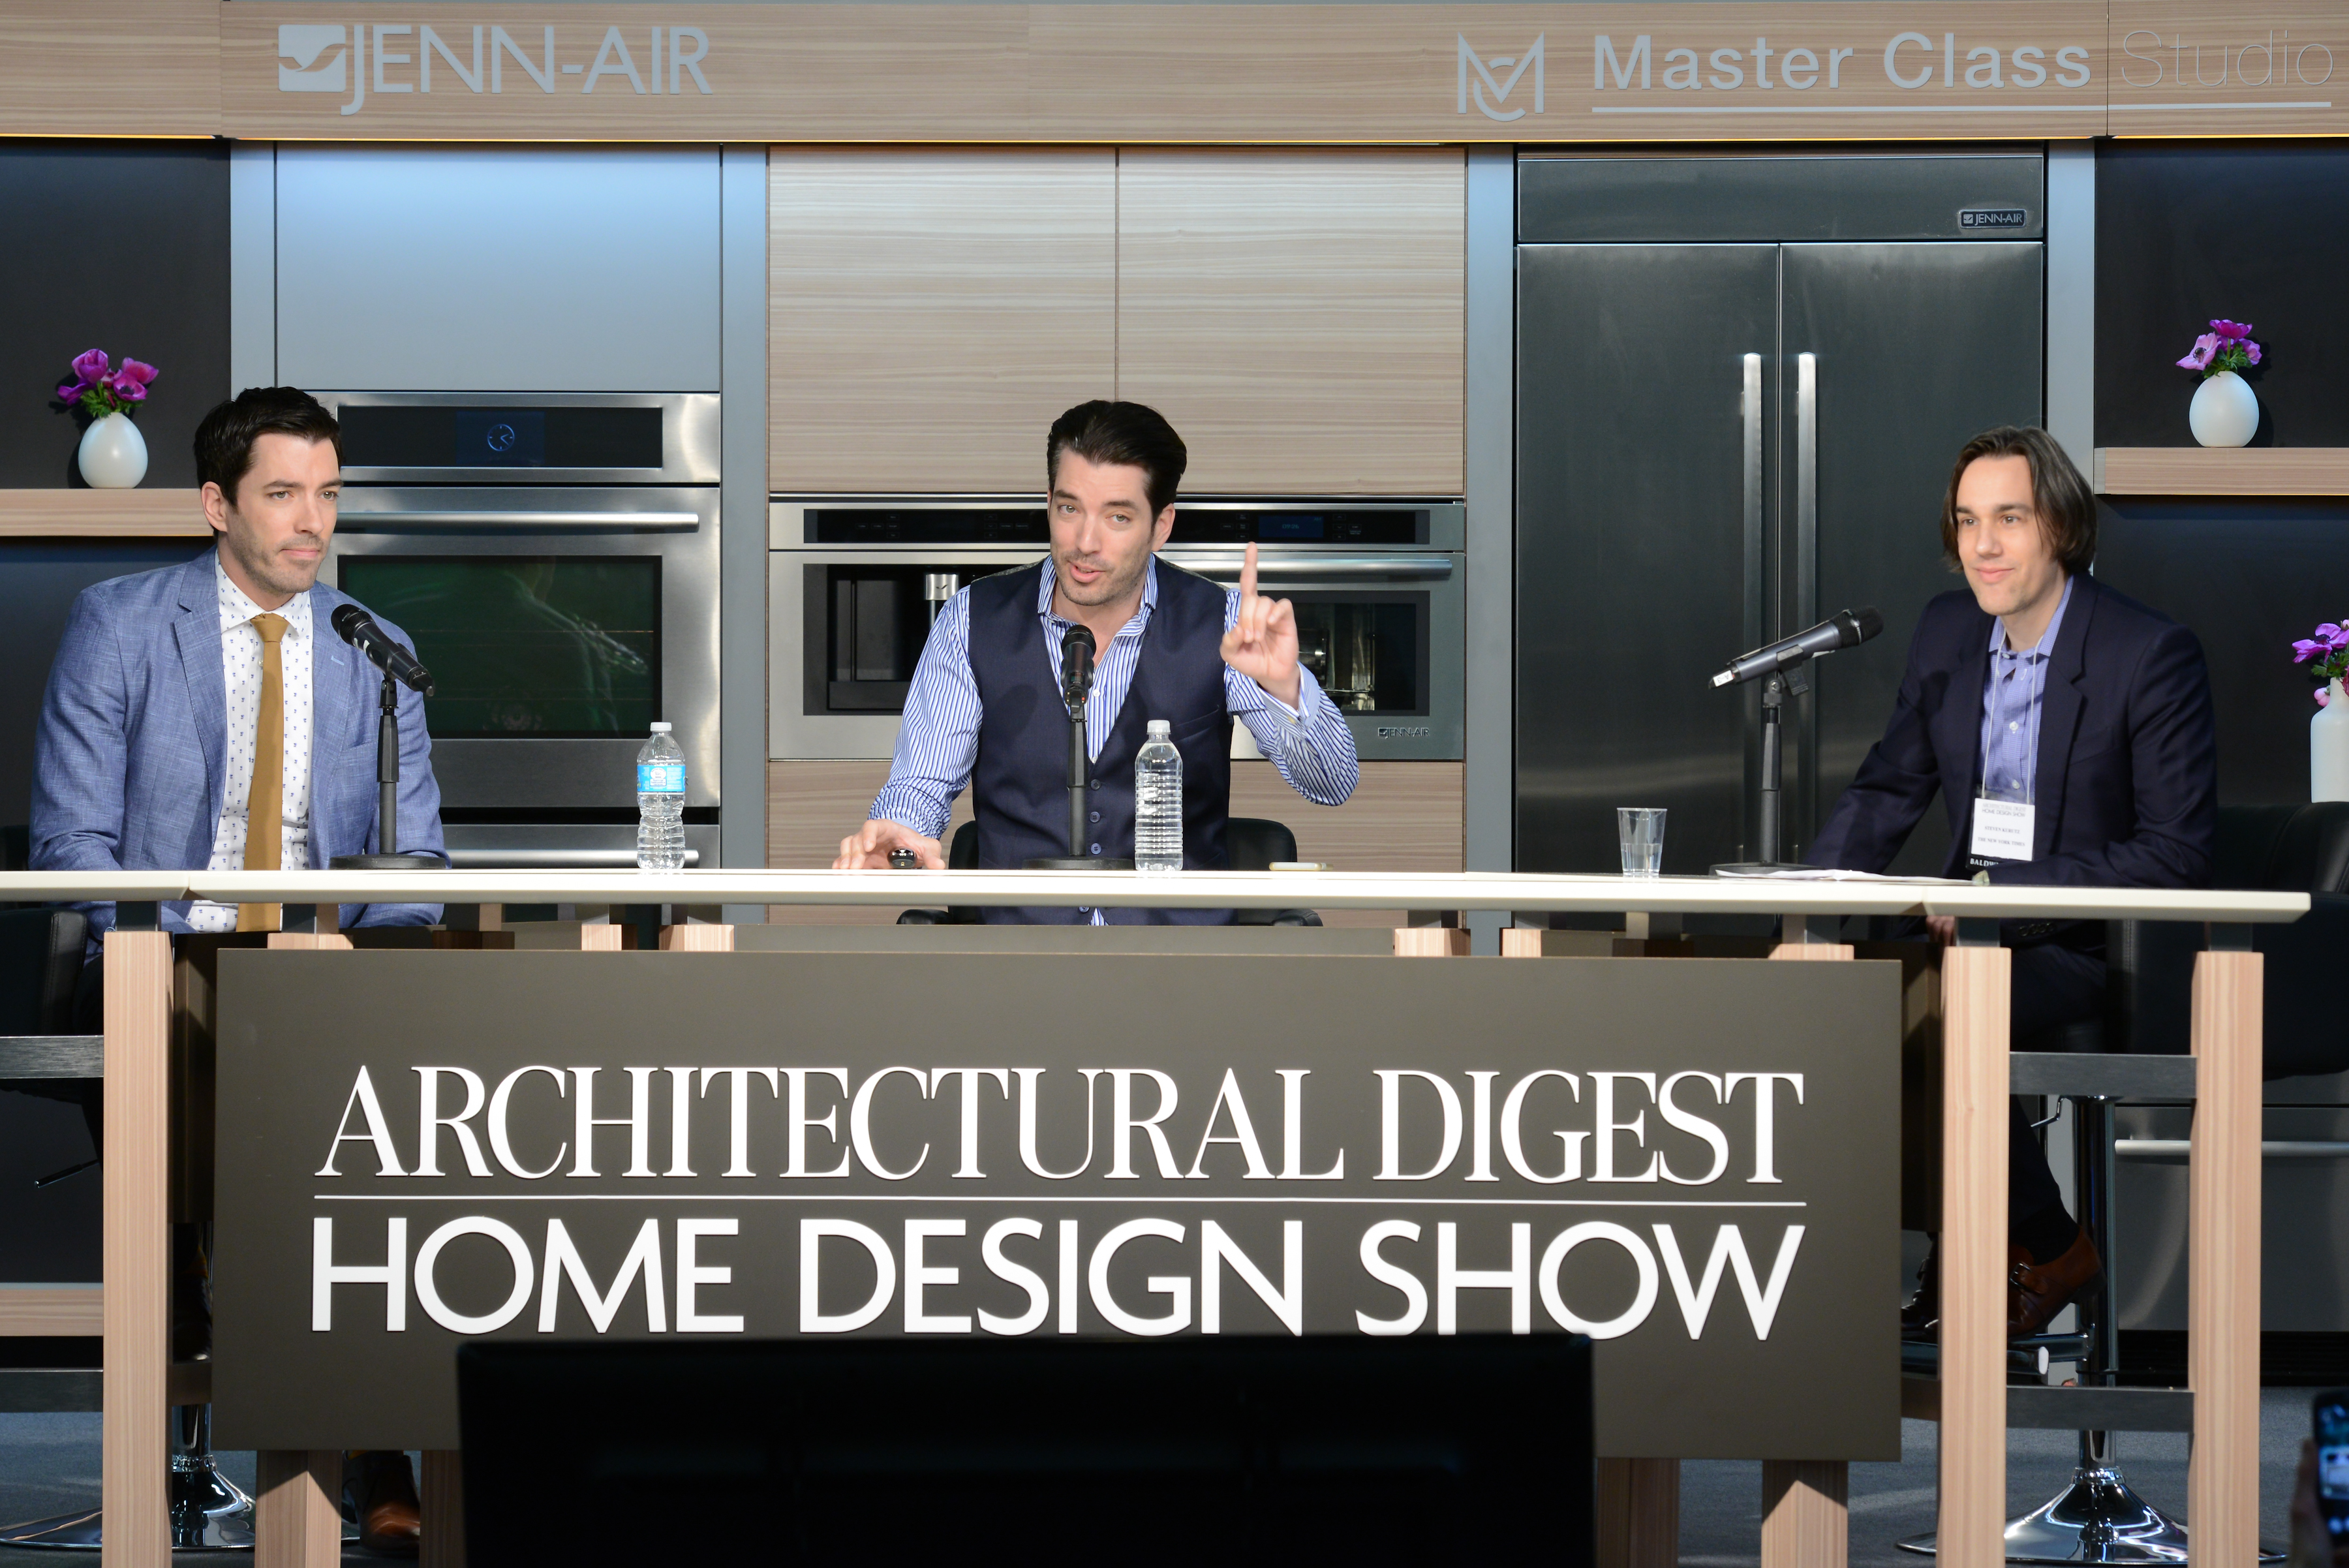 architectural digest home design show 2015 ad360 87809